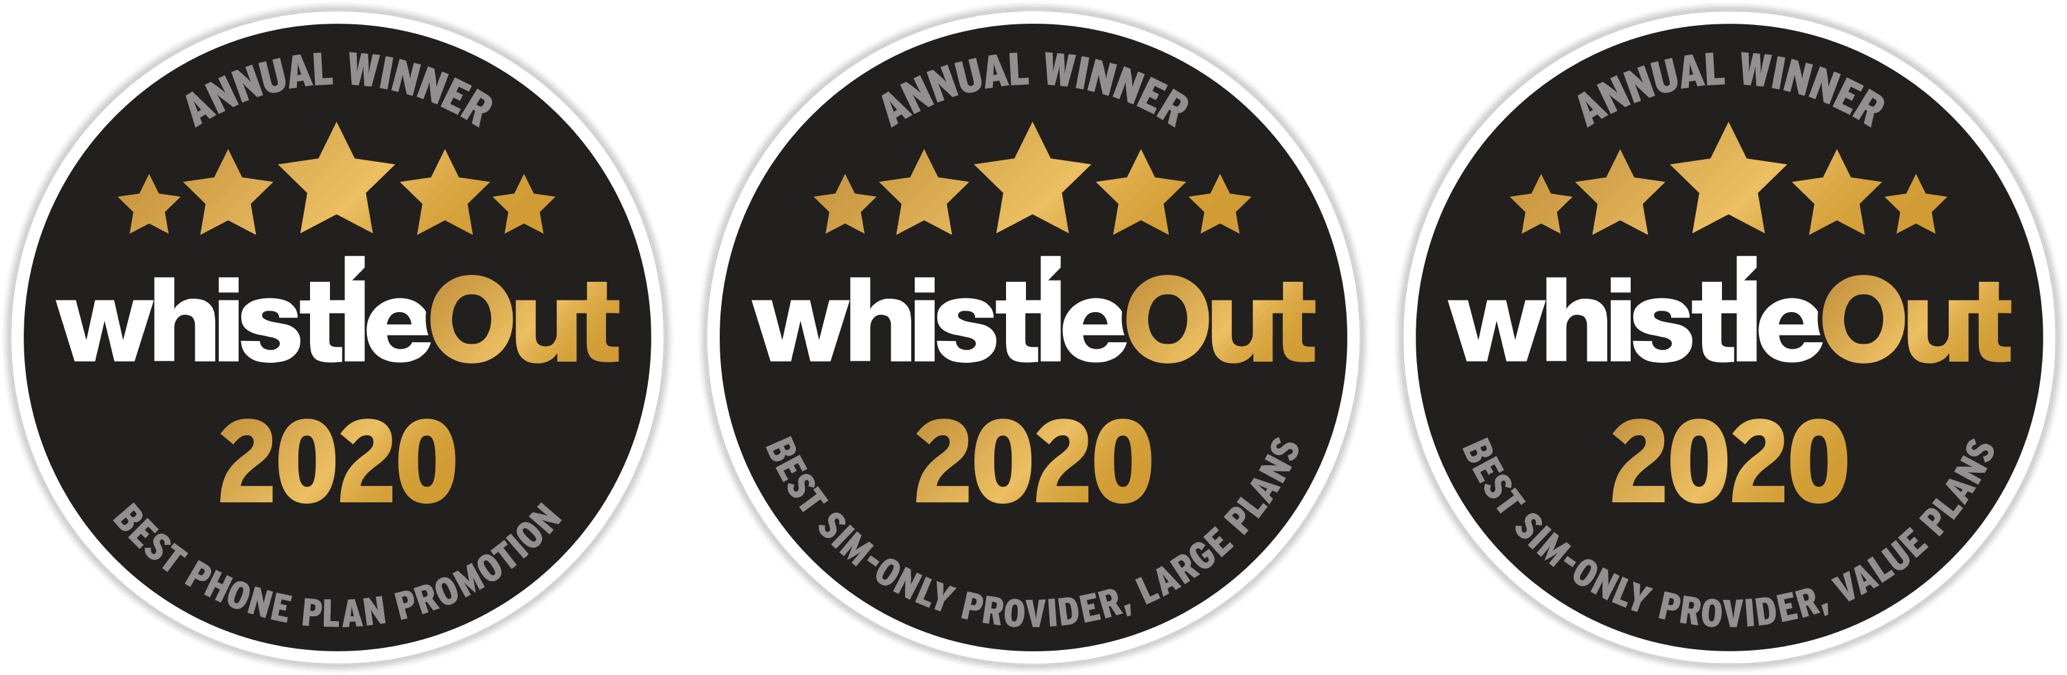 whistle out 2020